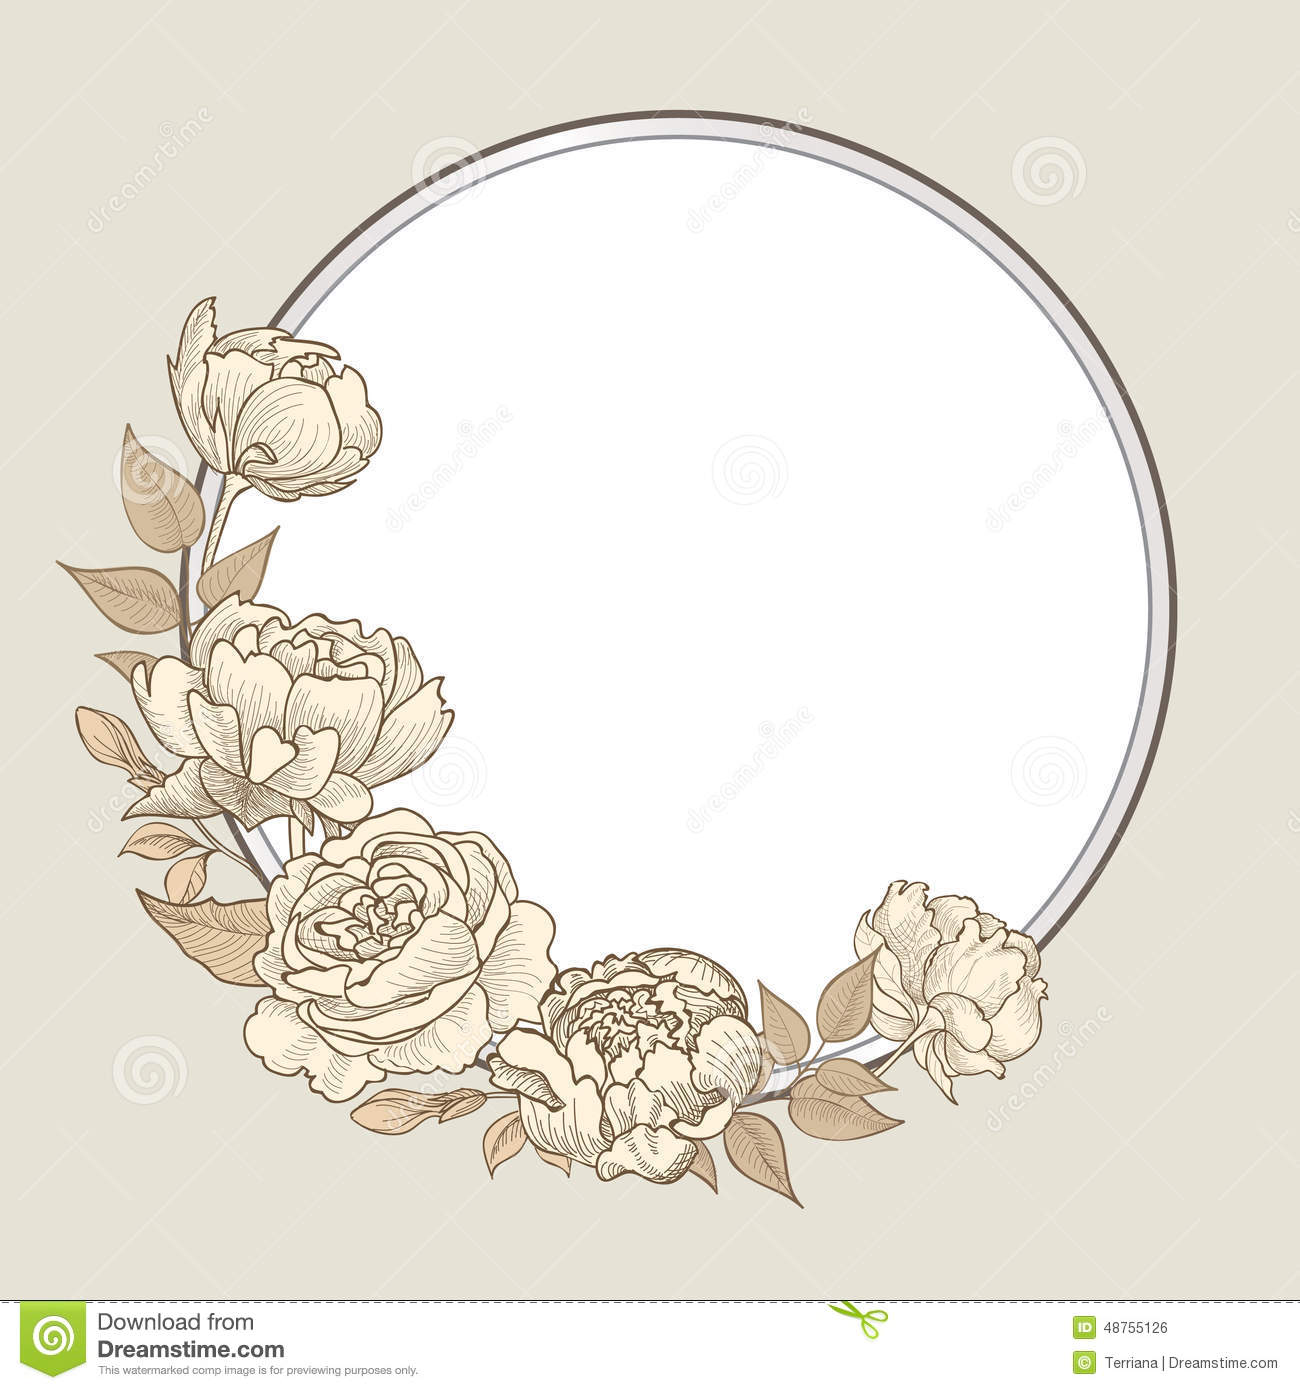 Floral Vintage Border Flourish Victorian Style Congratulation Blossom Royalty Free Illustration